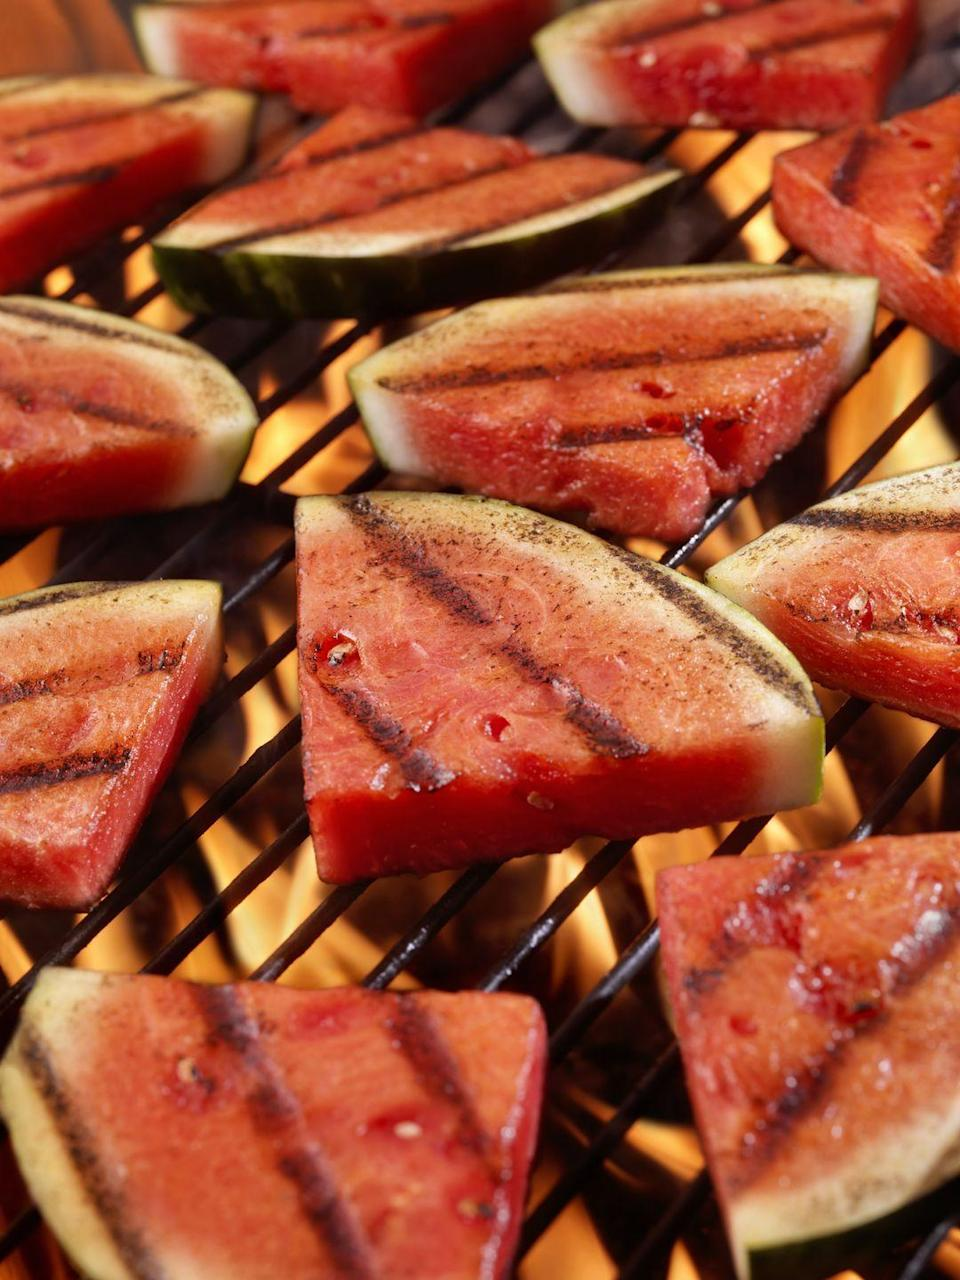 <p>You can put more or less anything on a BBQ. One of the most exciting things I've ever done is put a whole watermelon straight onto the grill. I just dehydrated and marinated the watermelon for a whole day, and then when I put it on the BBQ, the texture went all succulent and had an almost meaty texture. It's out of this world!</p>